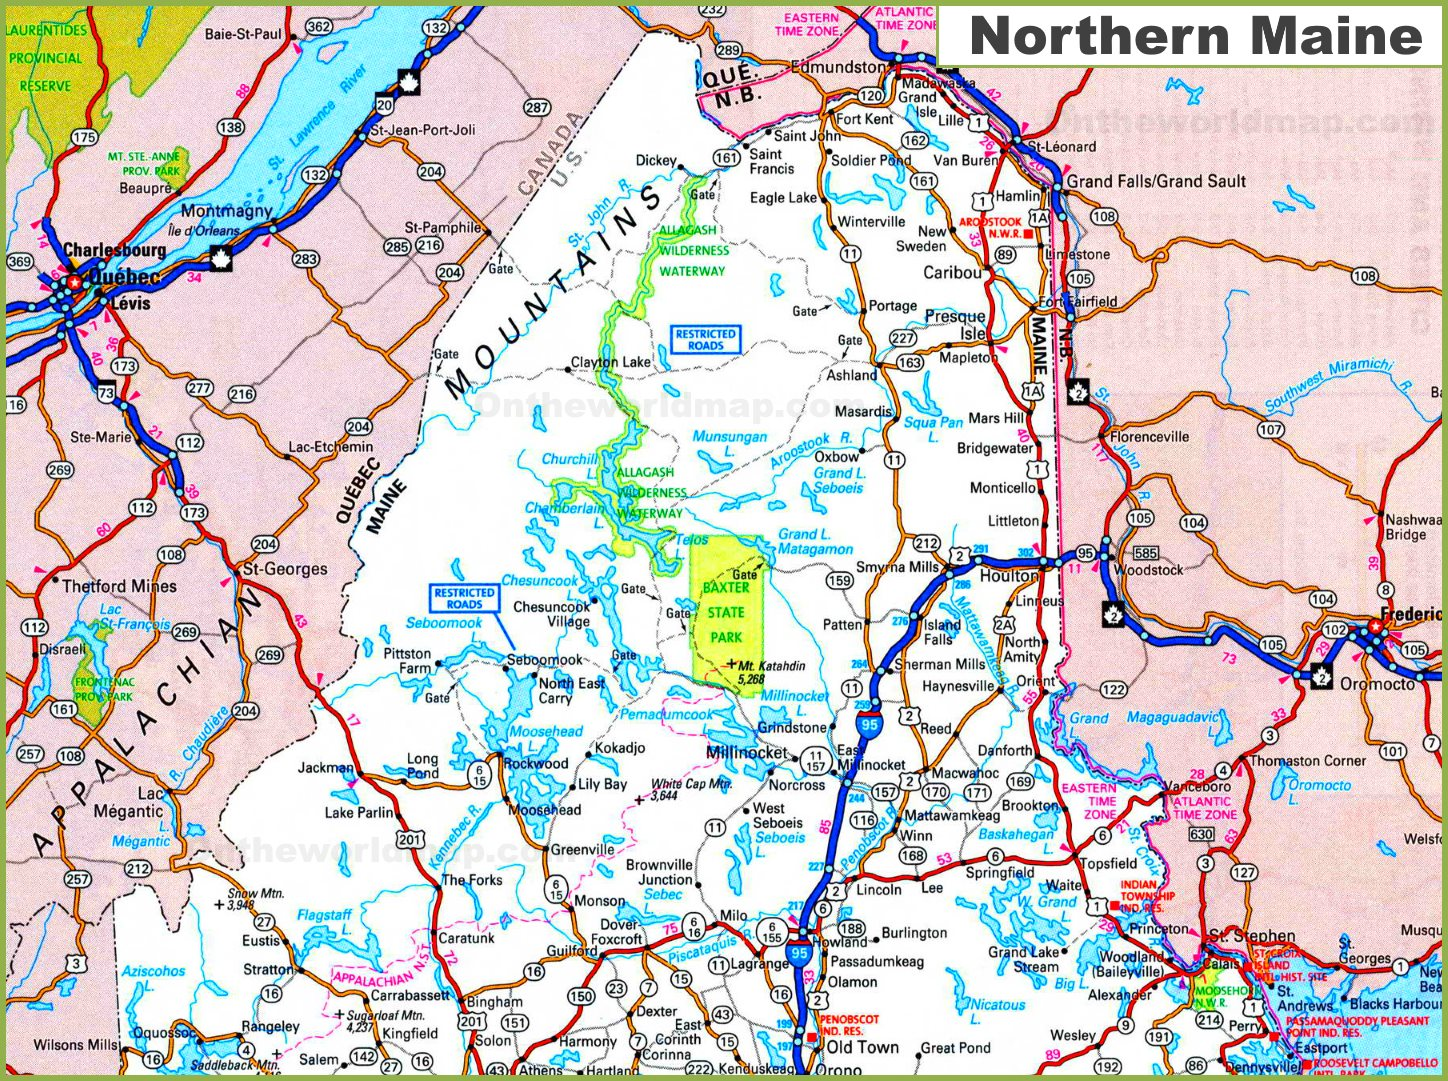 Perry Maine Map.Map Of Northern Maine